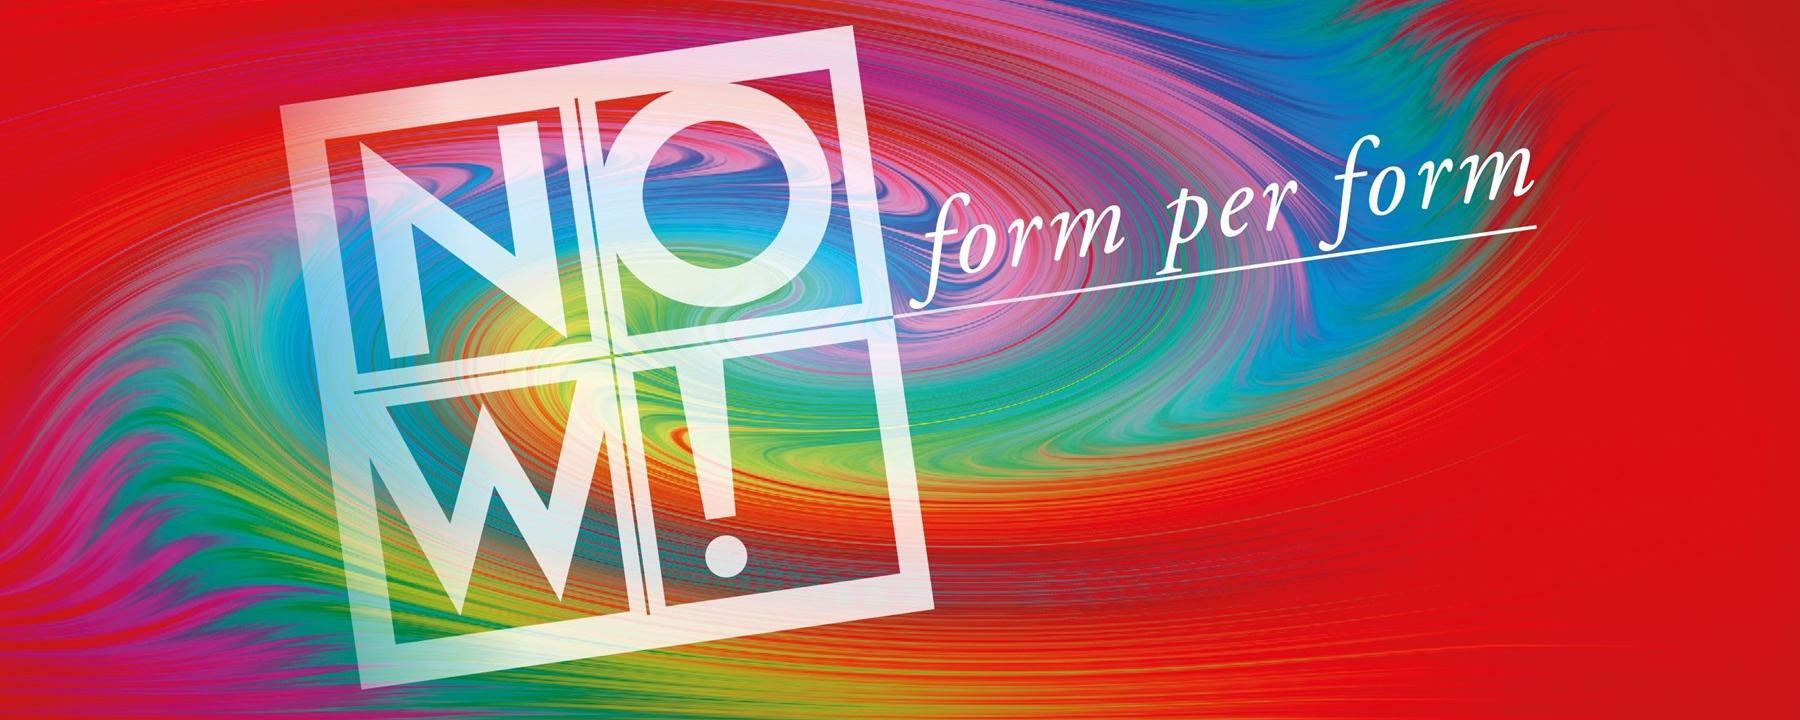 NOW! FORM PER FORM